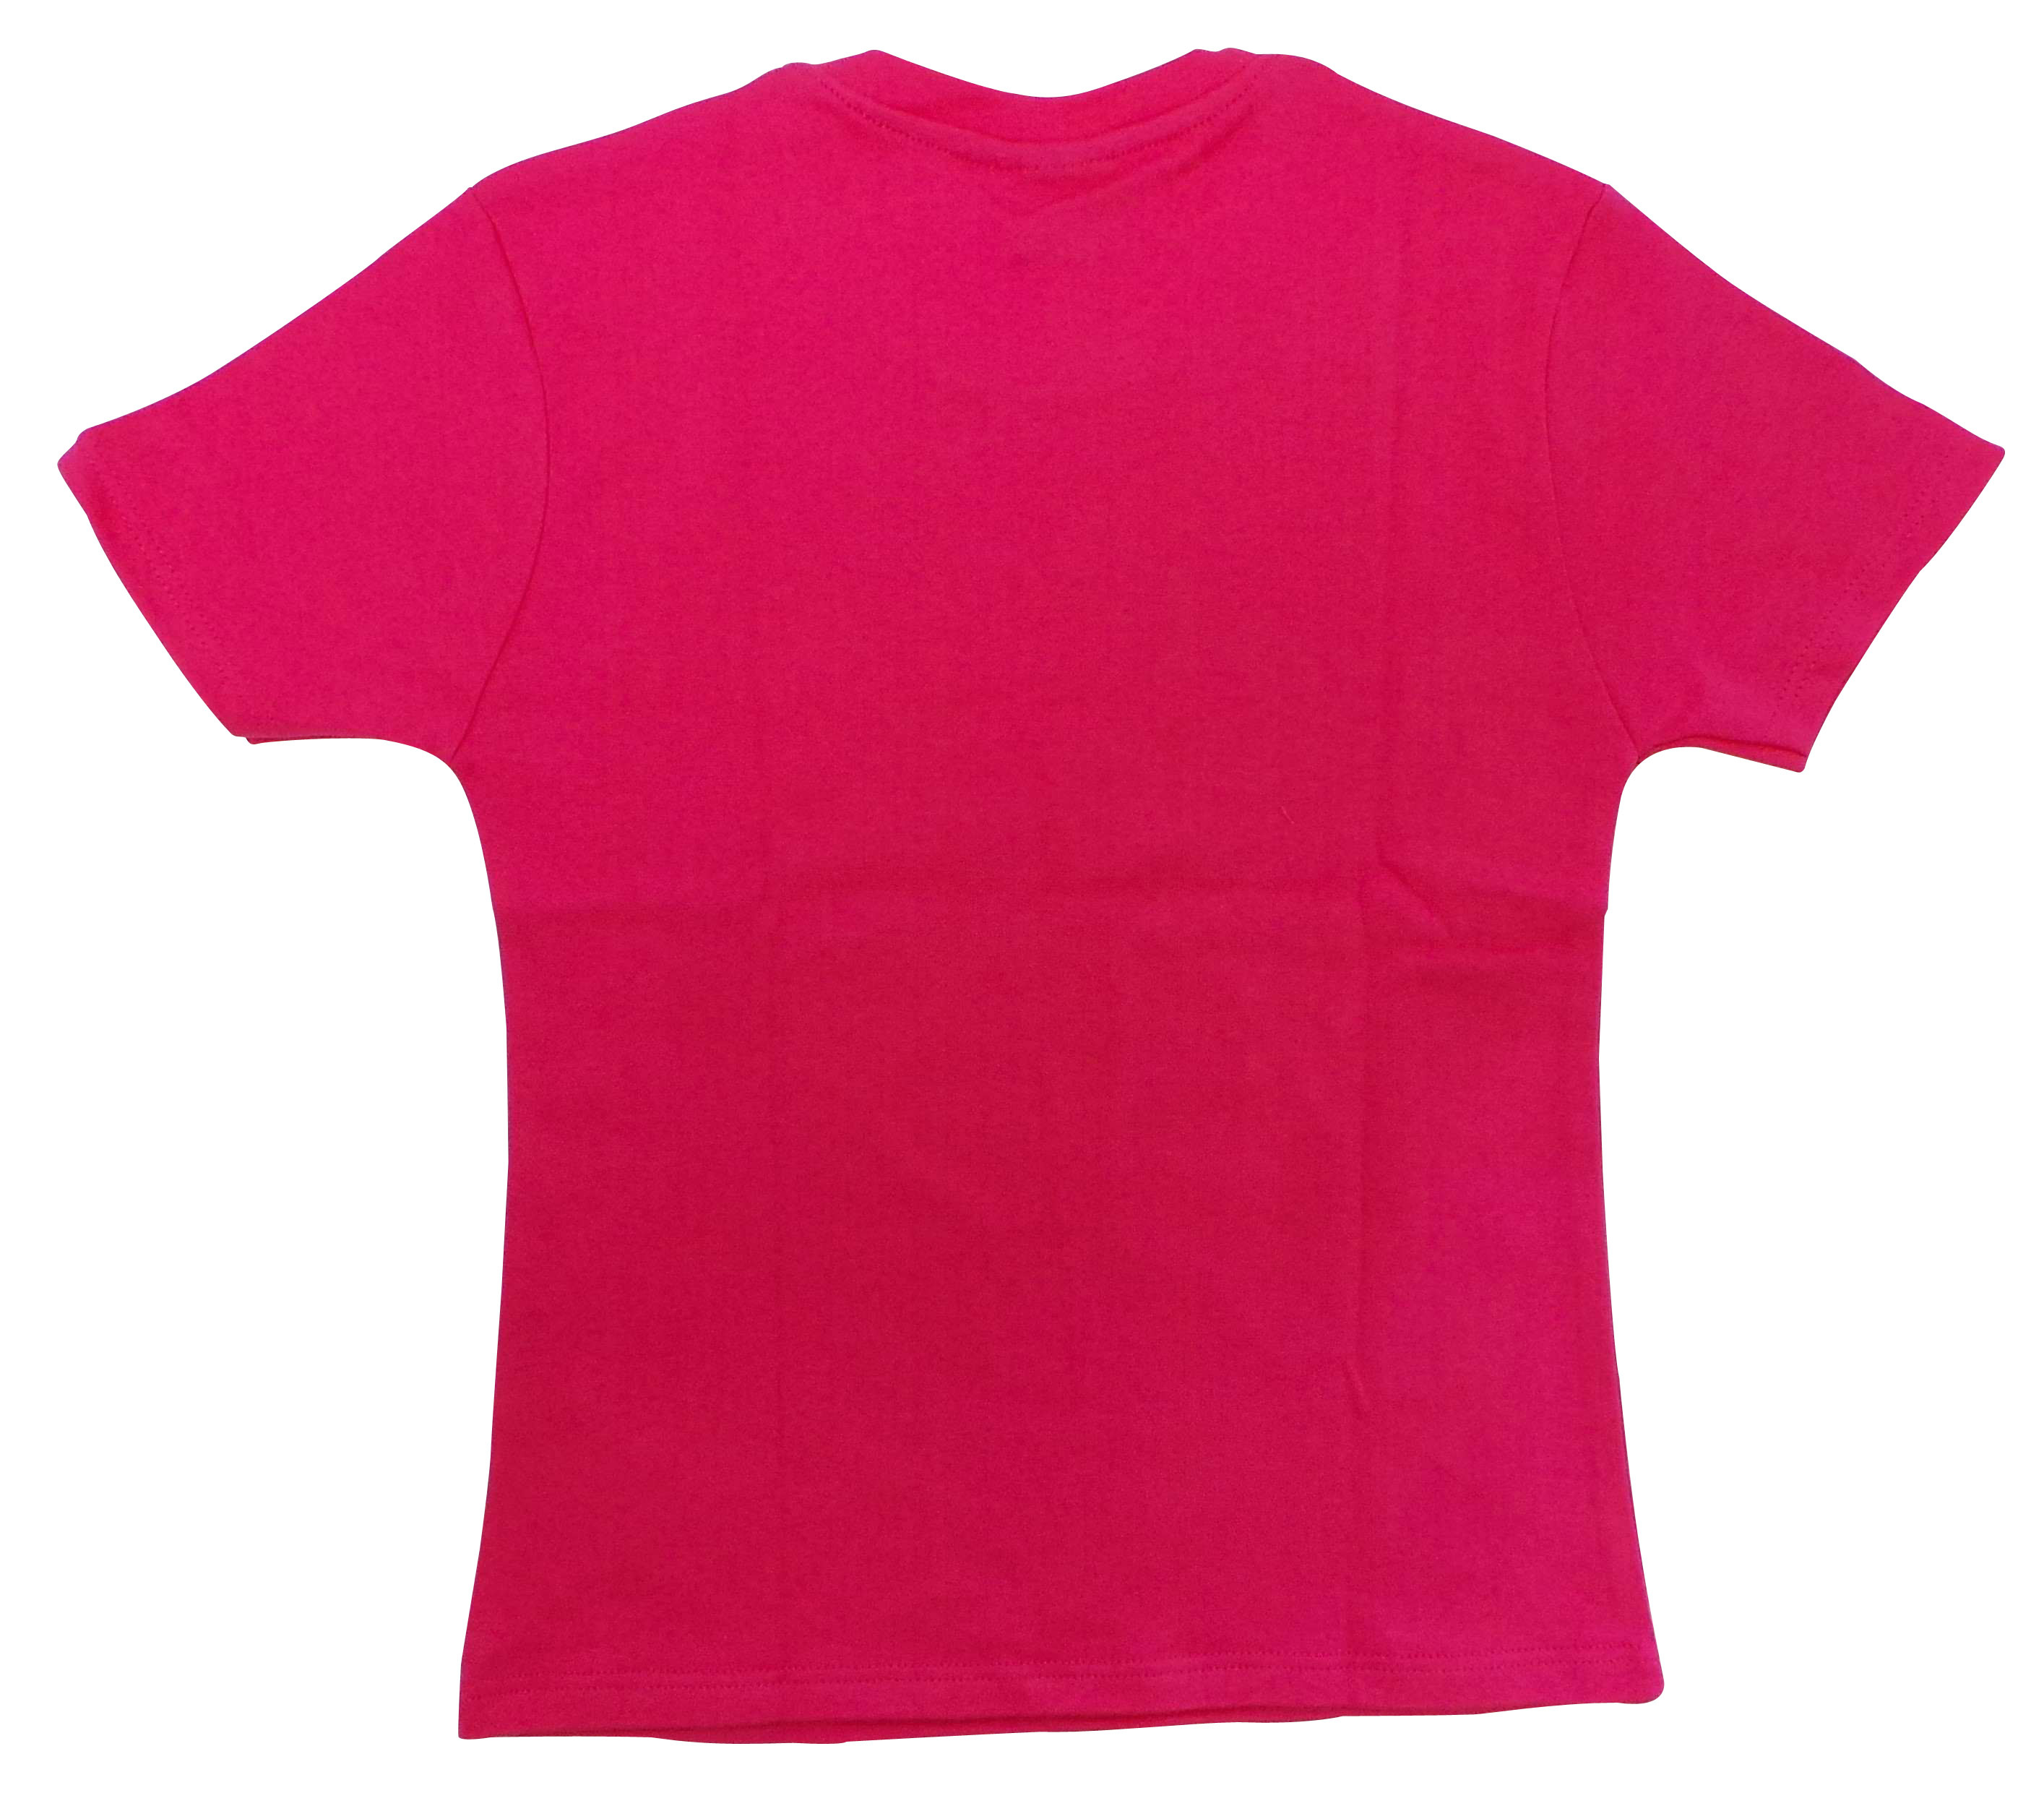 0cb345ab849b5 ... in a one colour design with no detailing. They are made by Bang on the  door t-shirts